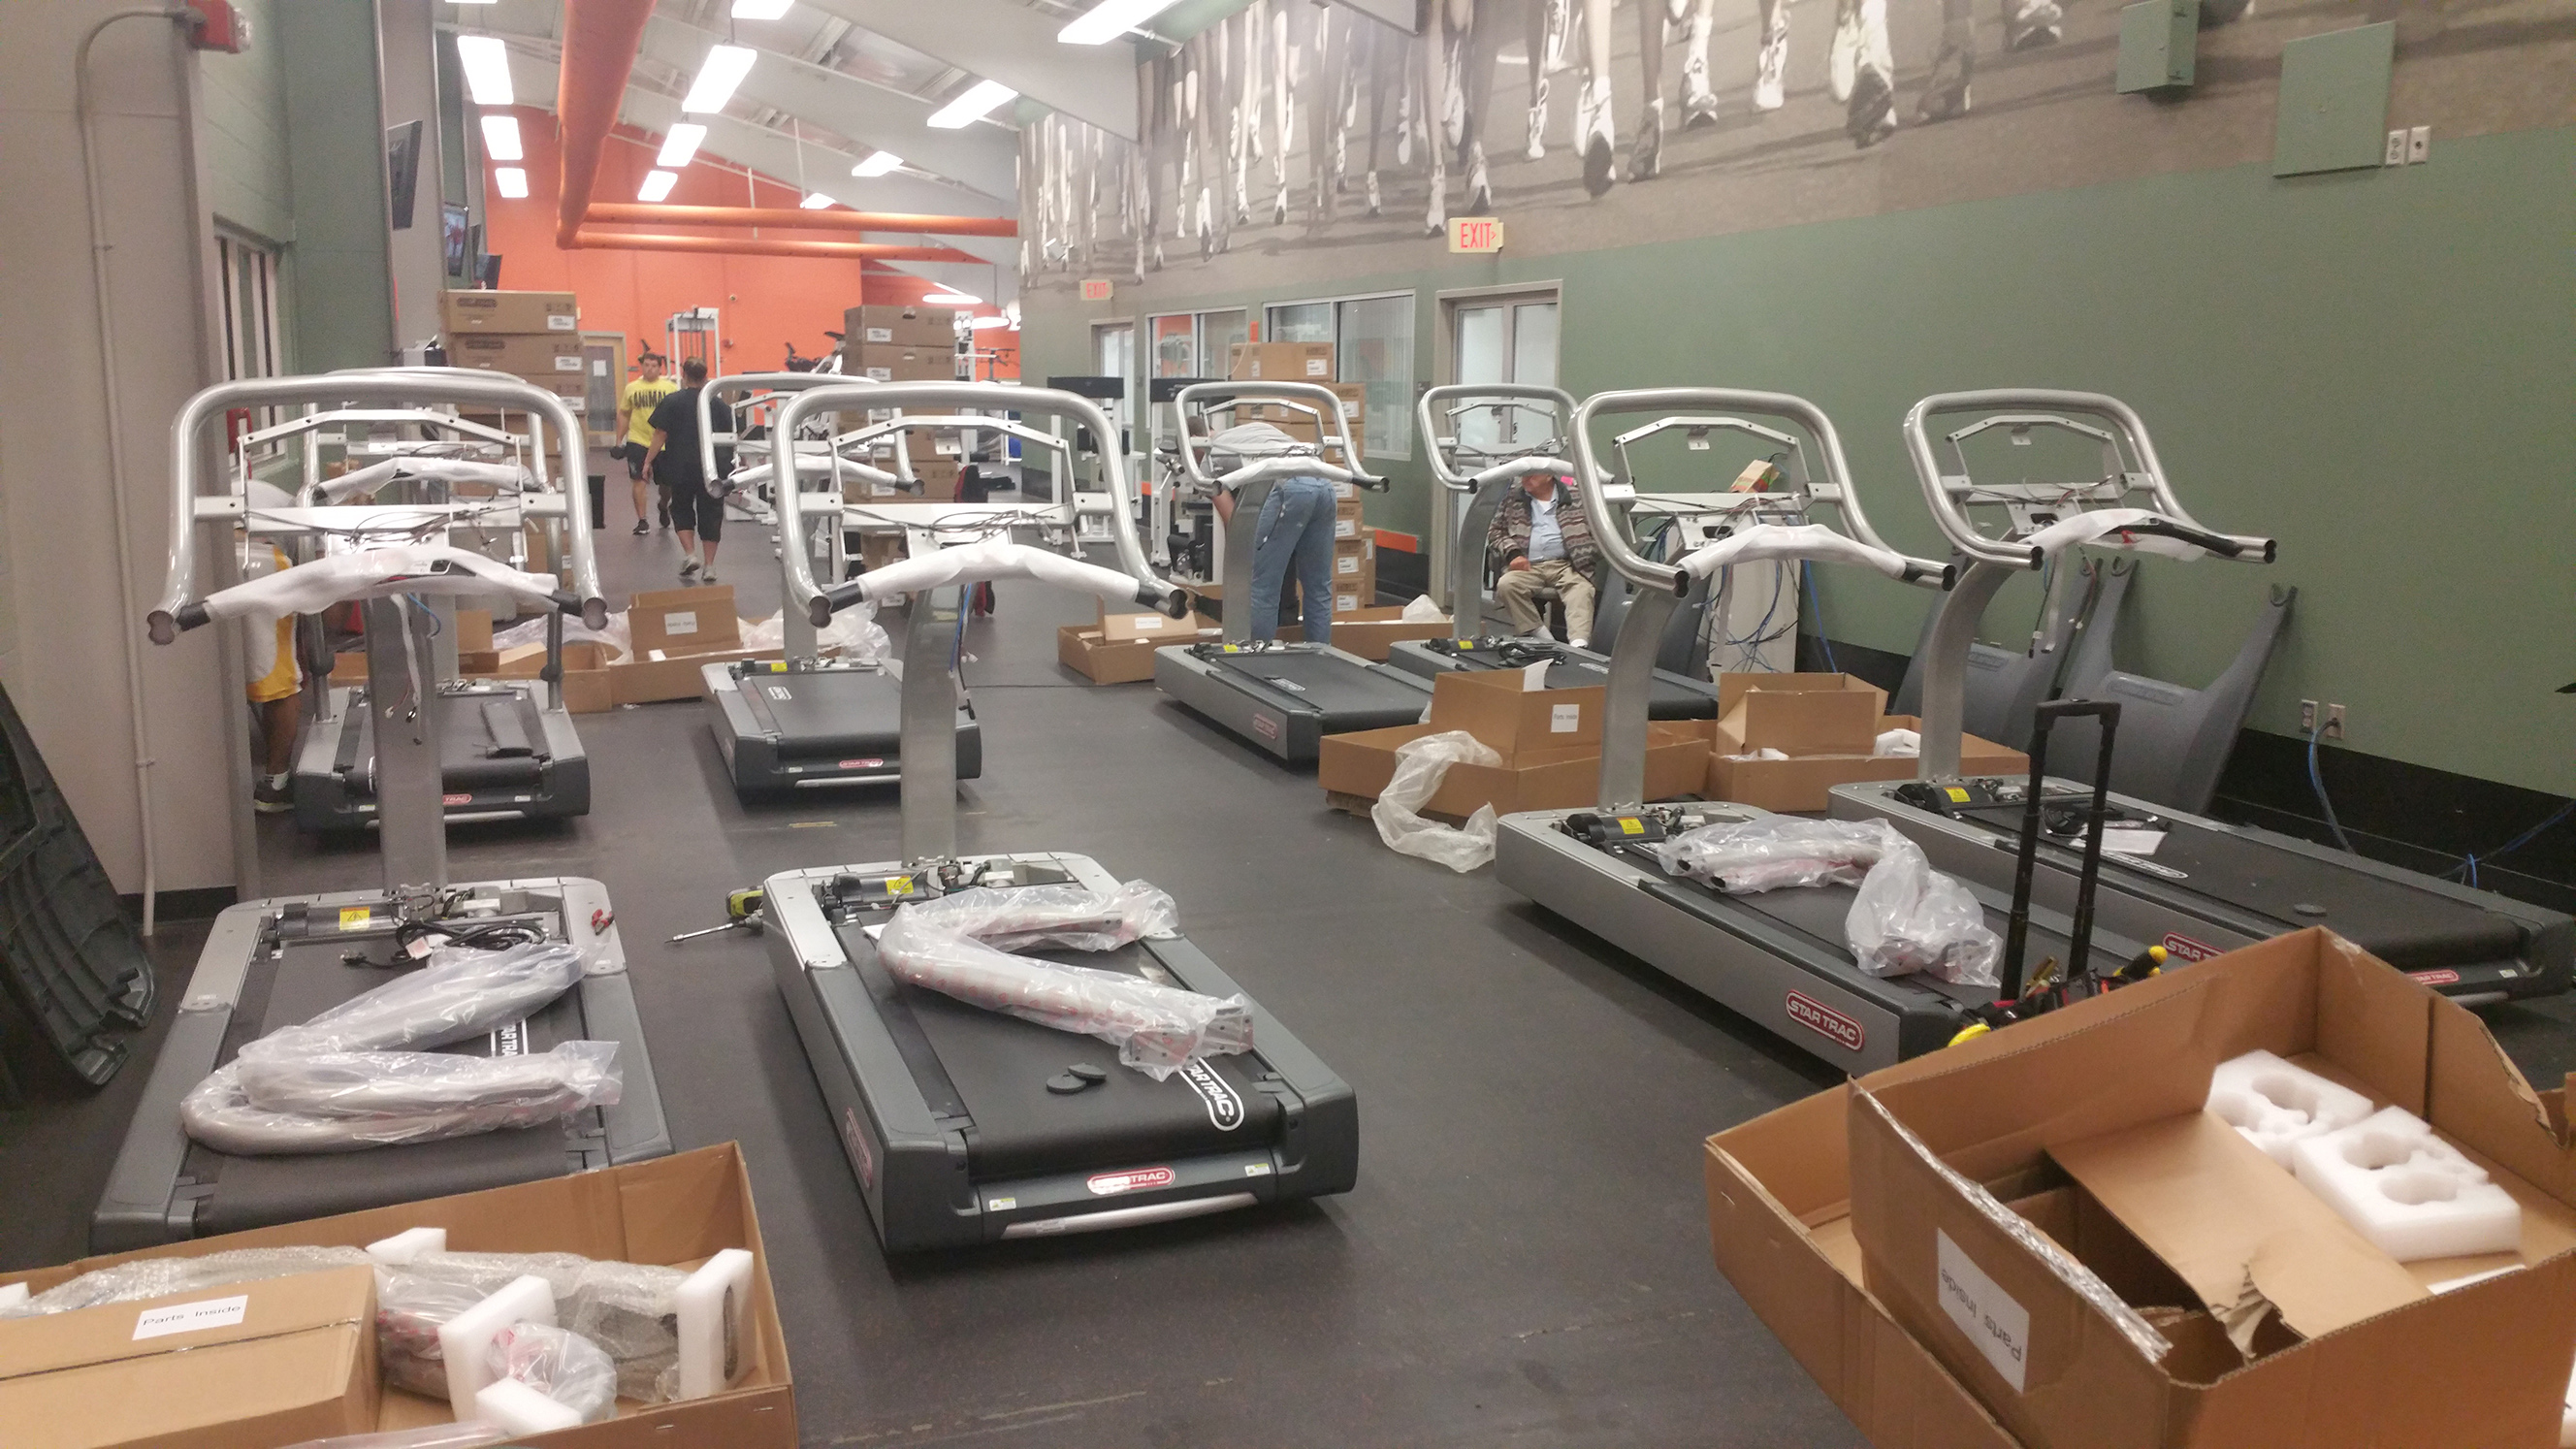 deliver and install fitness equipment